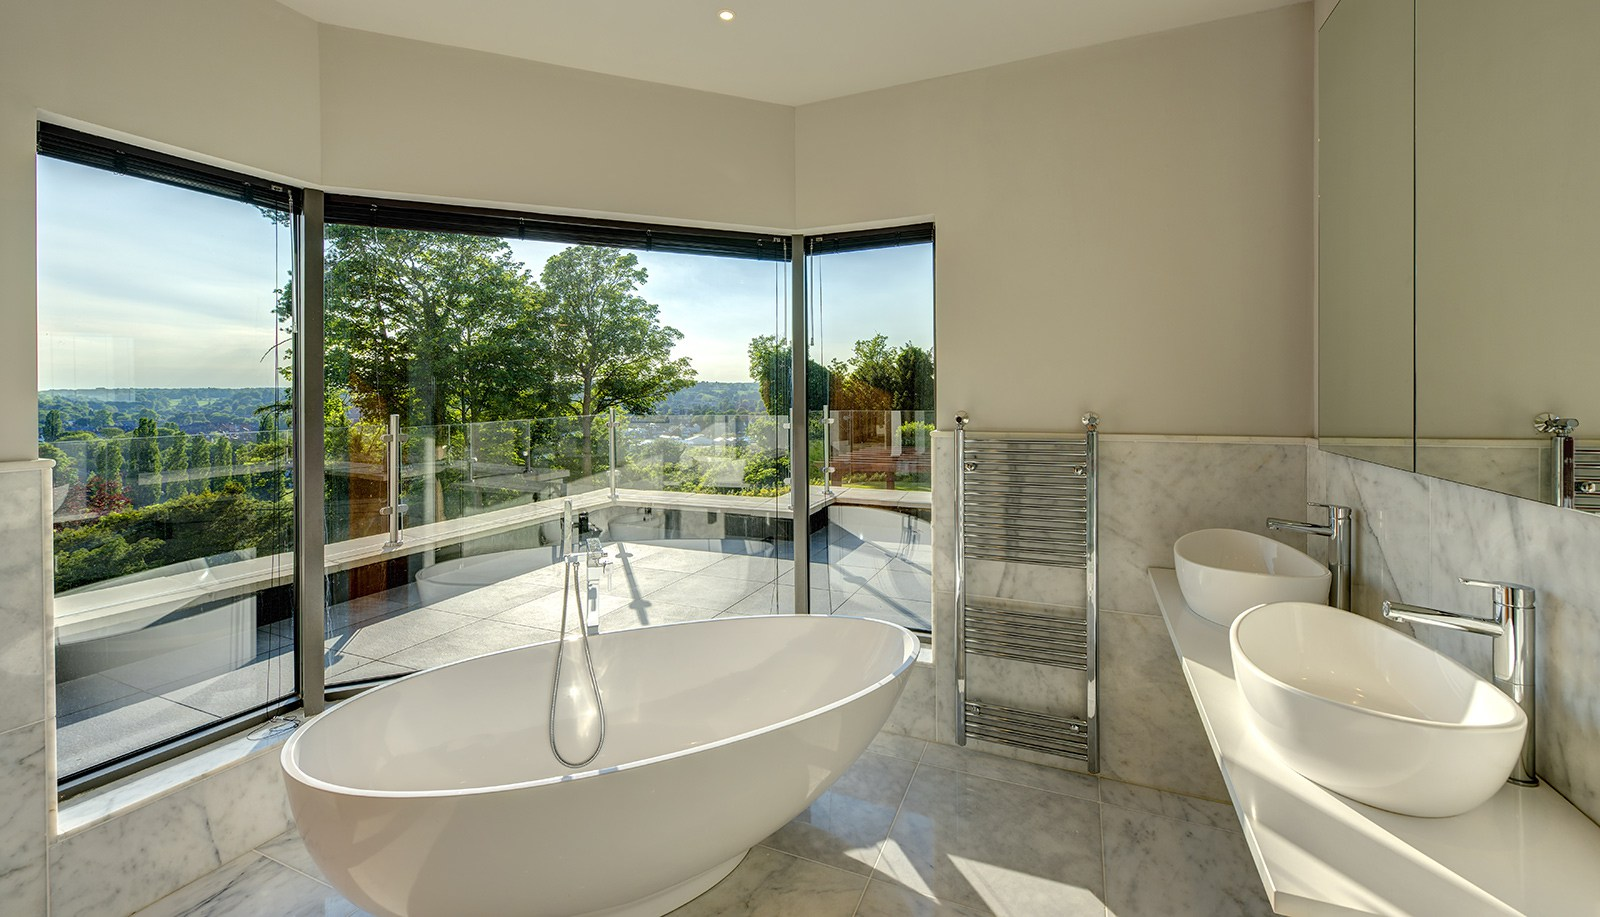 underwood-henley-on-thames-our-work-private-clients-ascot-design-view8.jpg